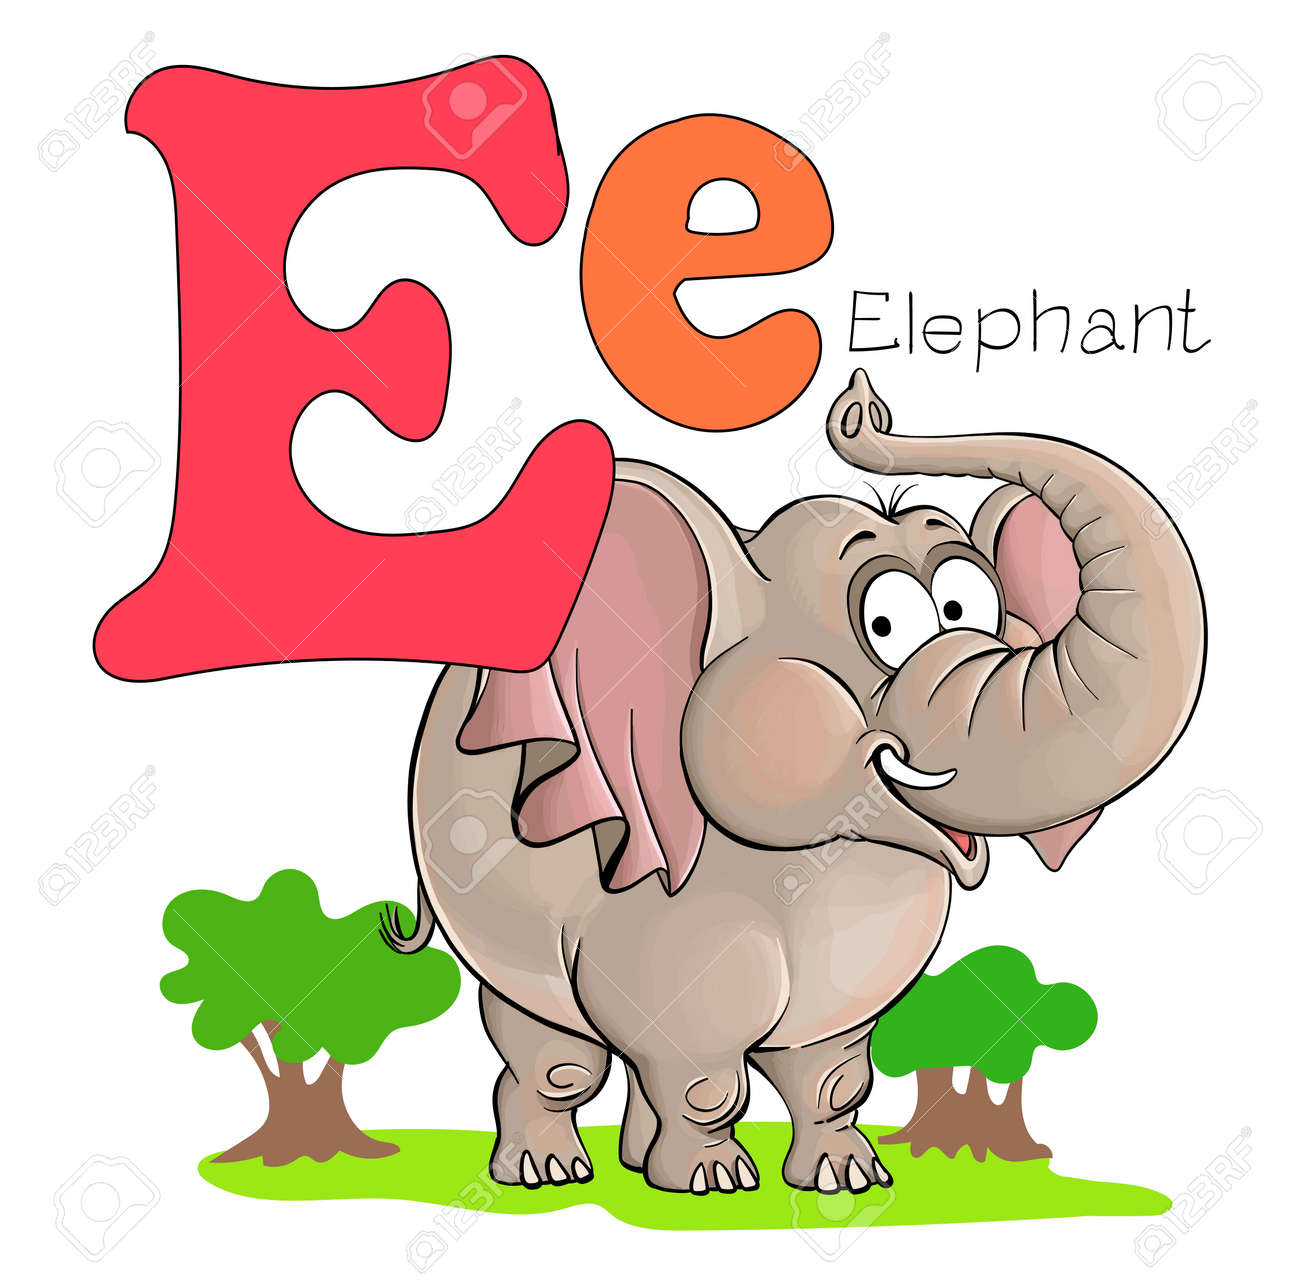 Vector illustration. Alphabet with animals. Large capital letter E with a picture of a bright, cute elephant. - 168498442